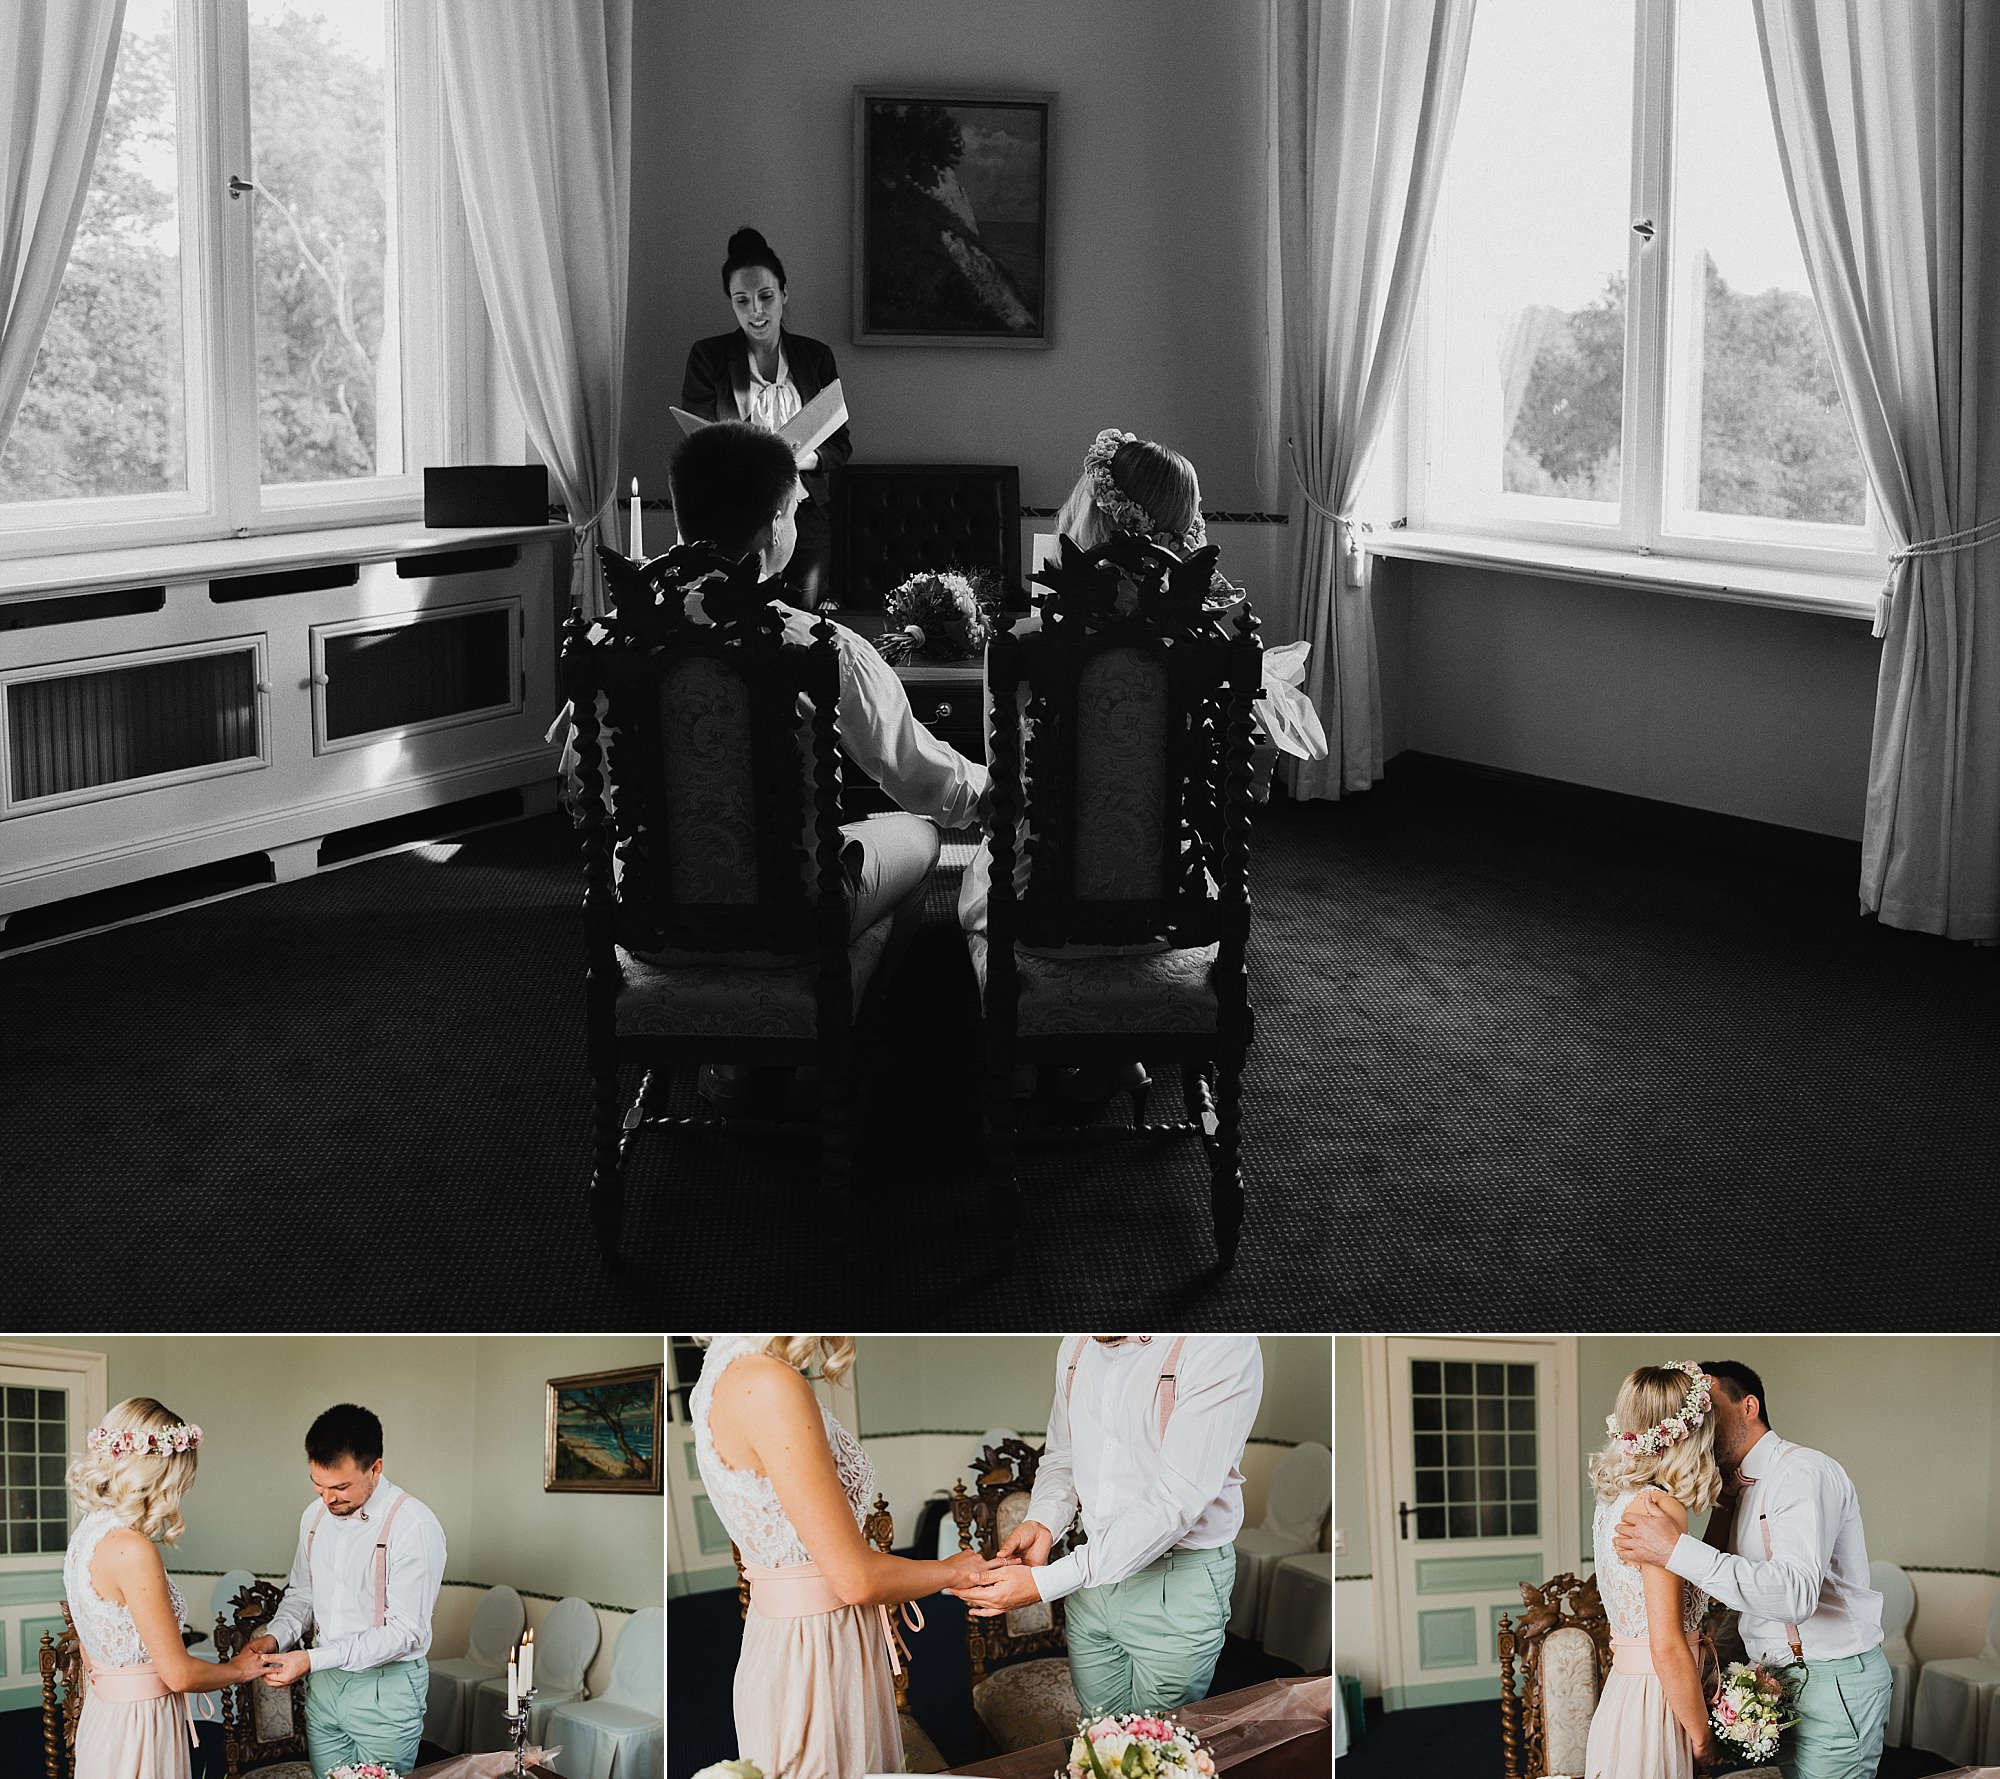 Weddings Schlosshotel Ralswiek